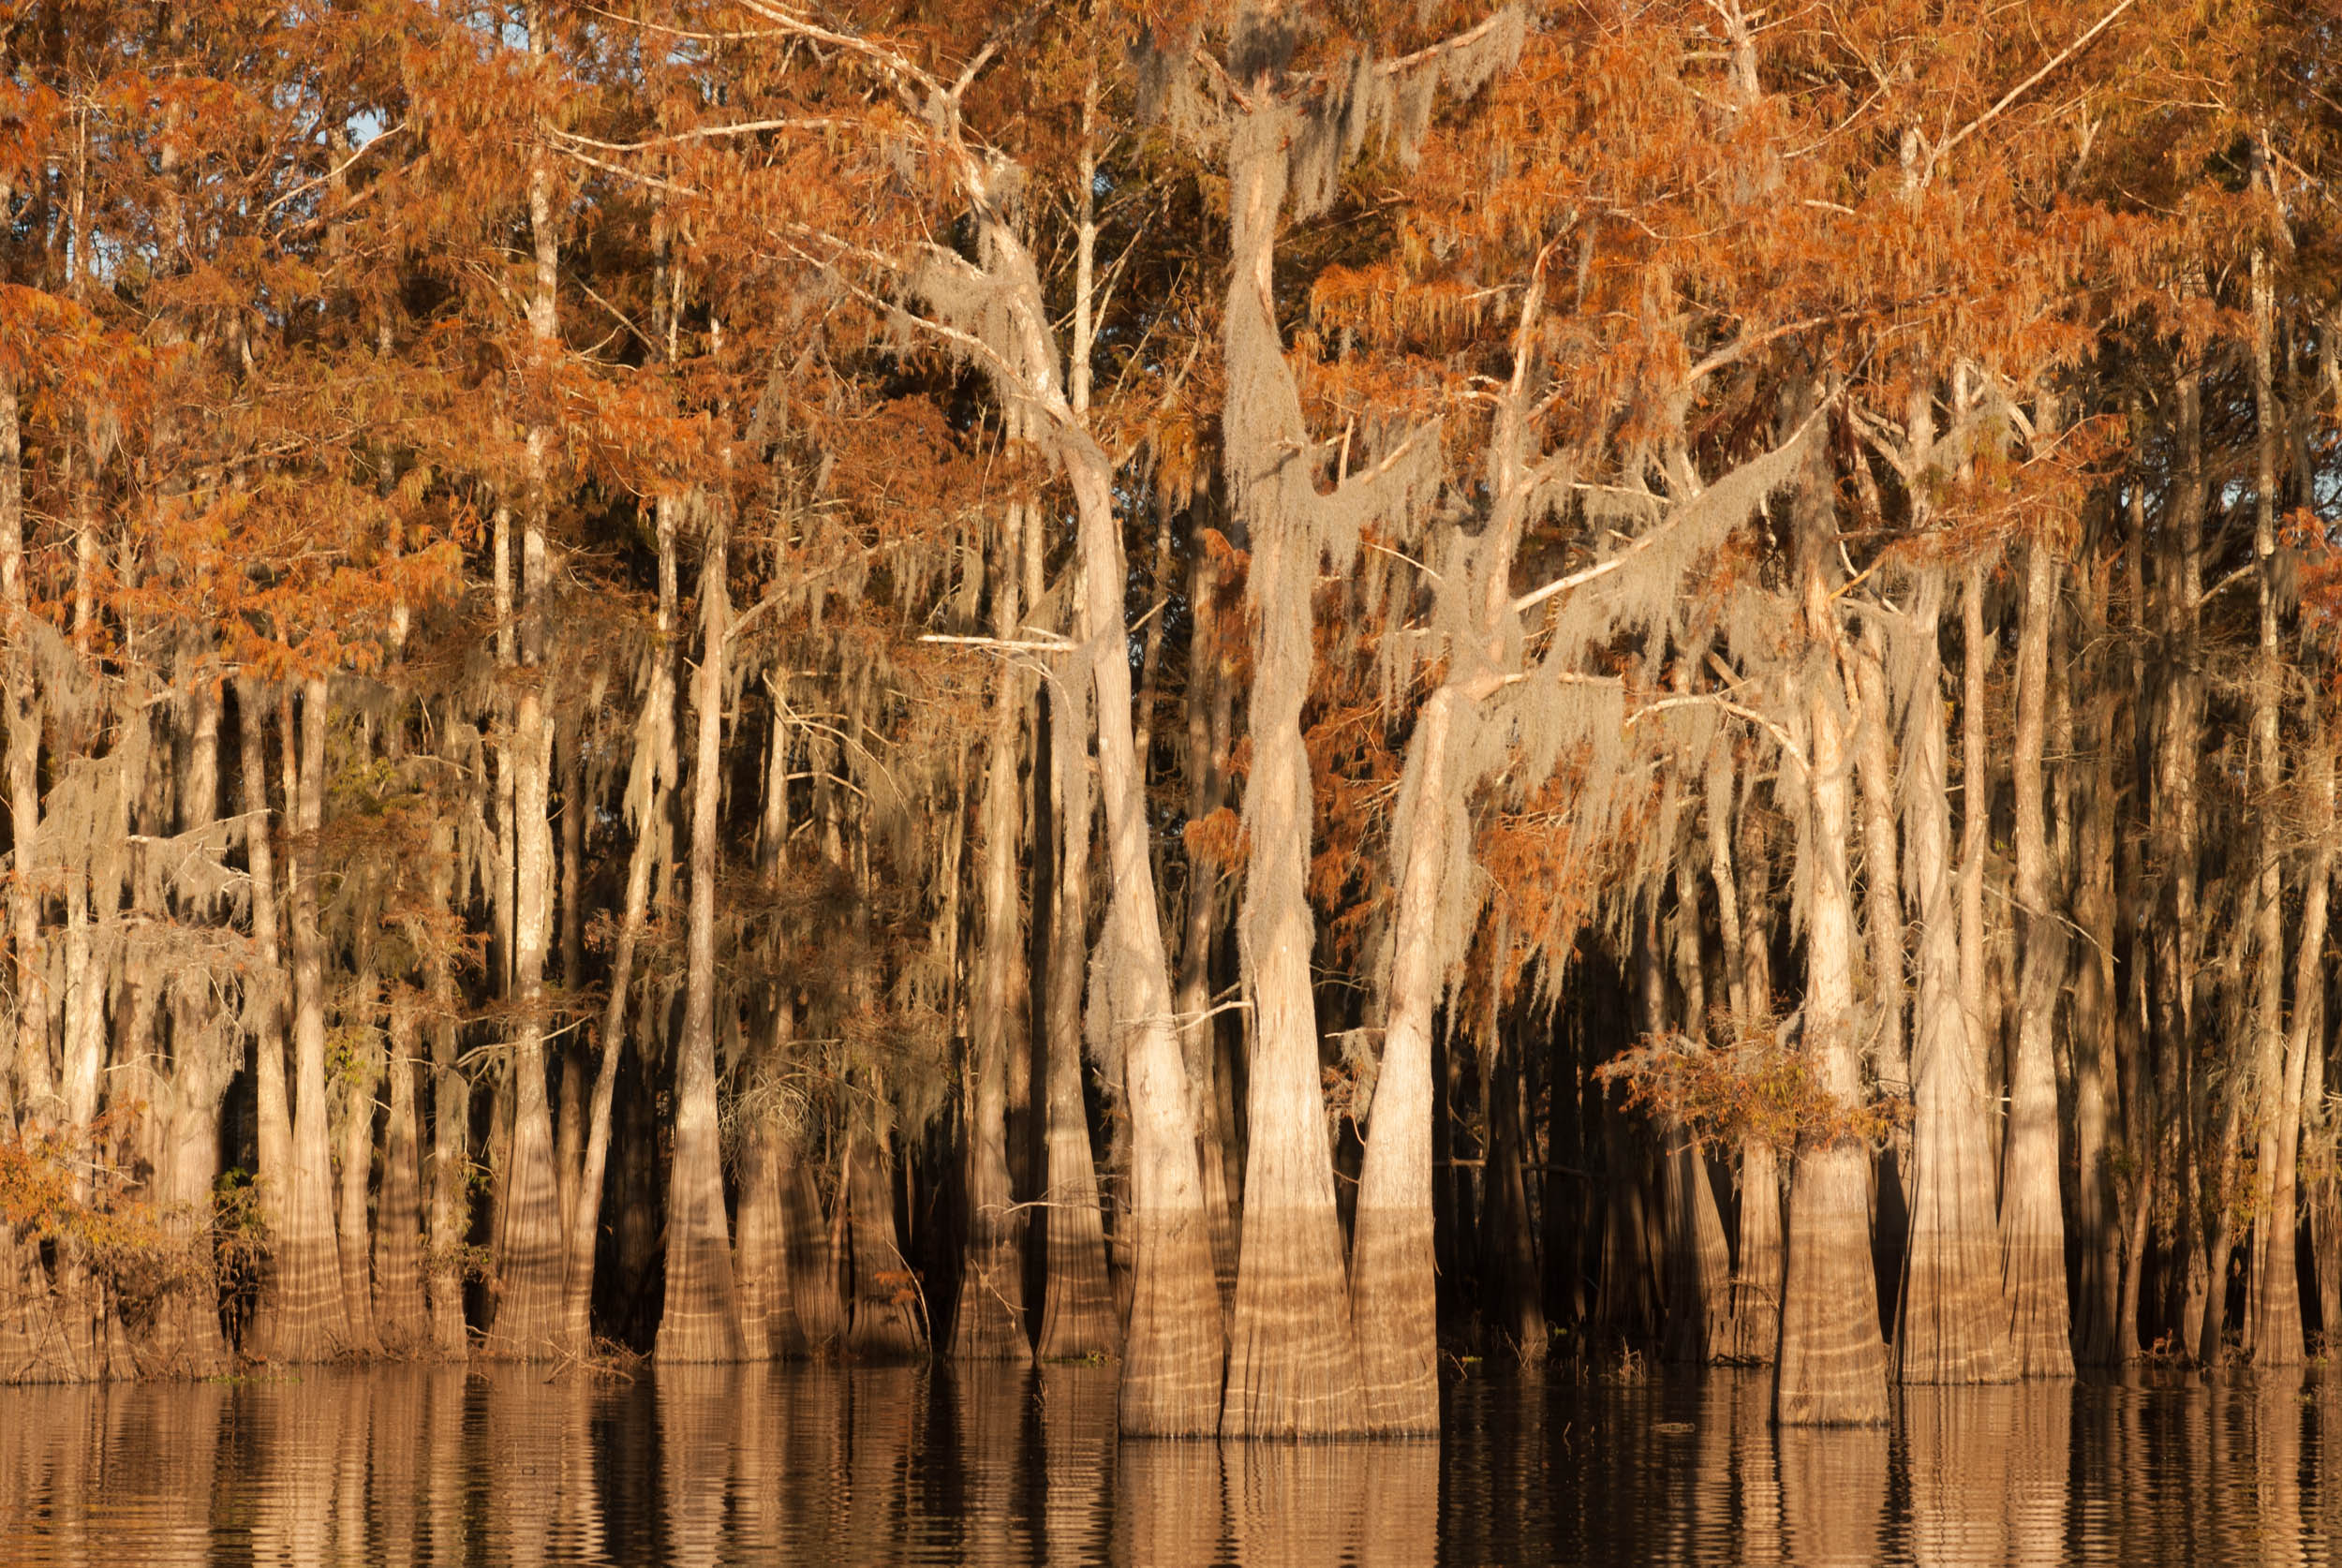 Cypress Trees – Herderson Lake, Butte La Rose, Atchafalaya Basin, Louisiana